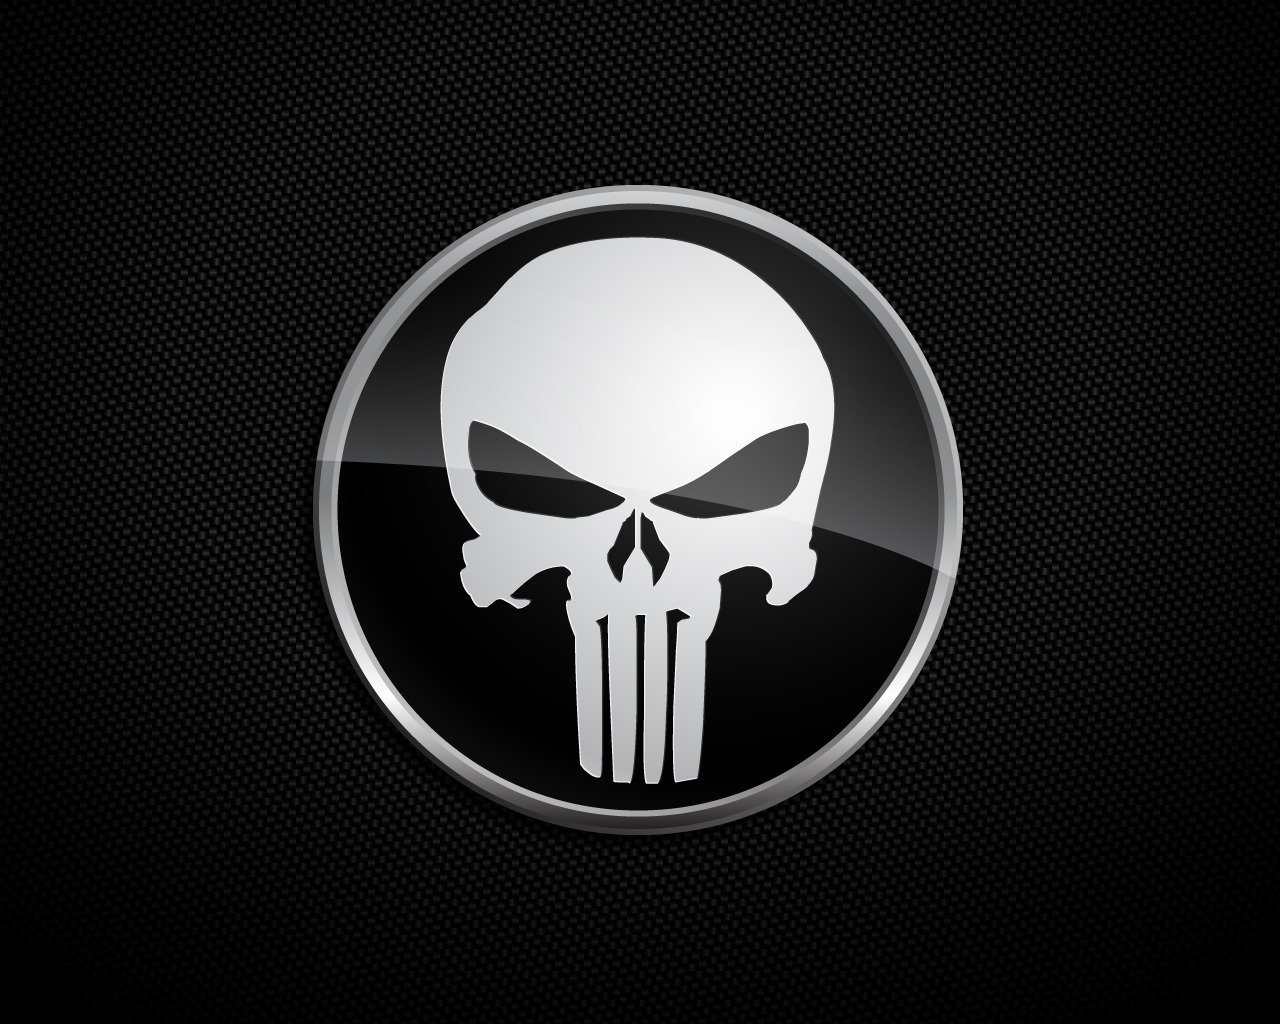 The Punisher Skull Logo HD Wallpapers Desktop Wallpapers 1280x1024